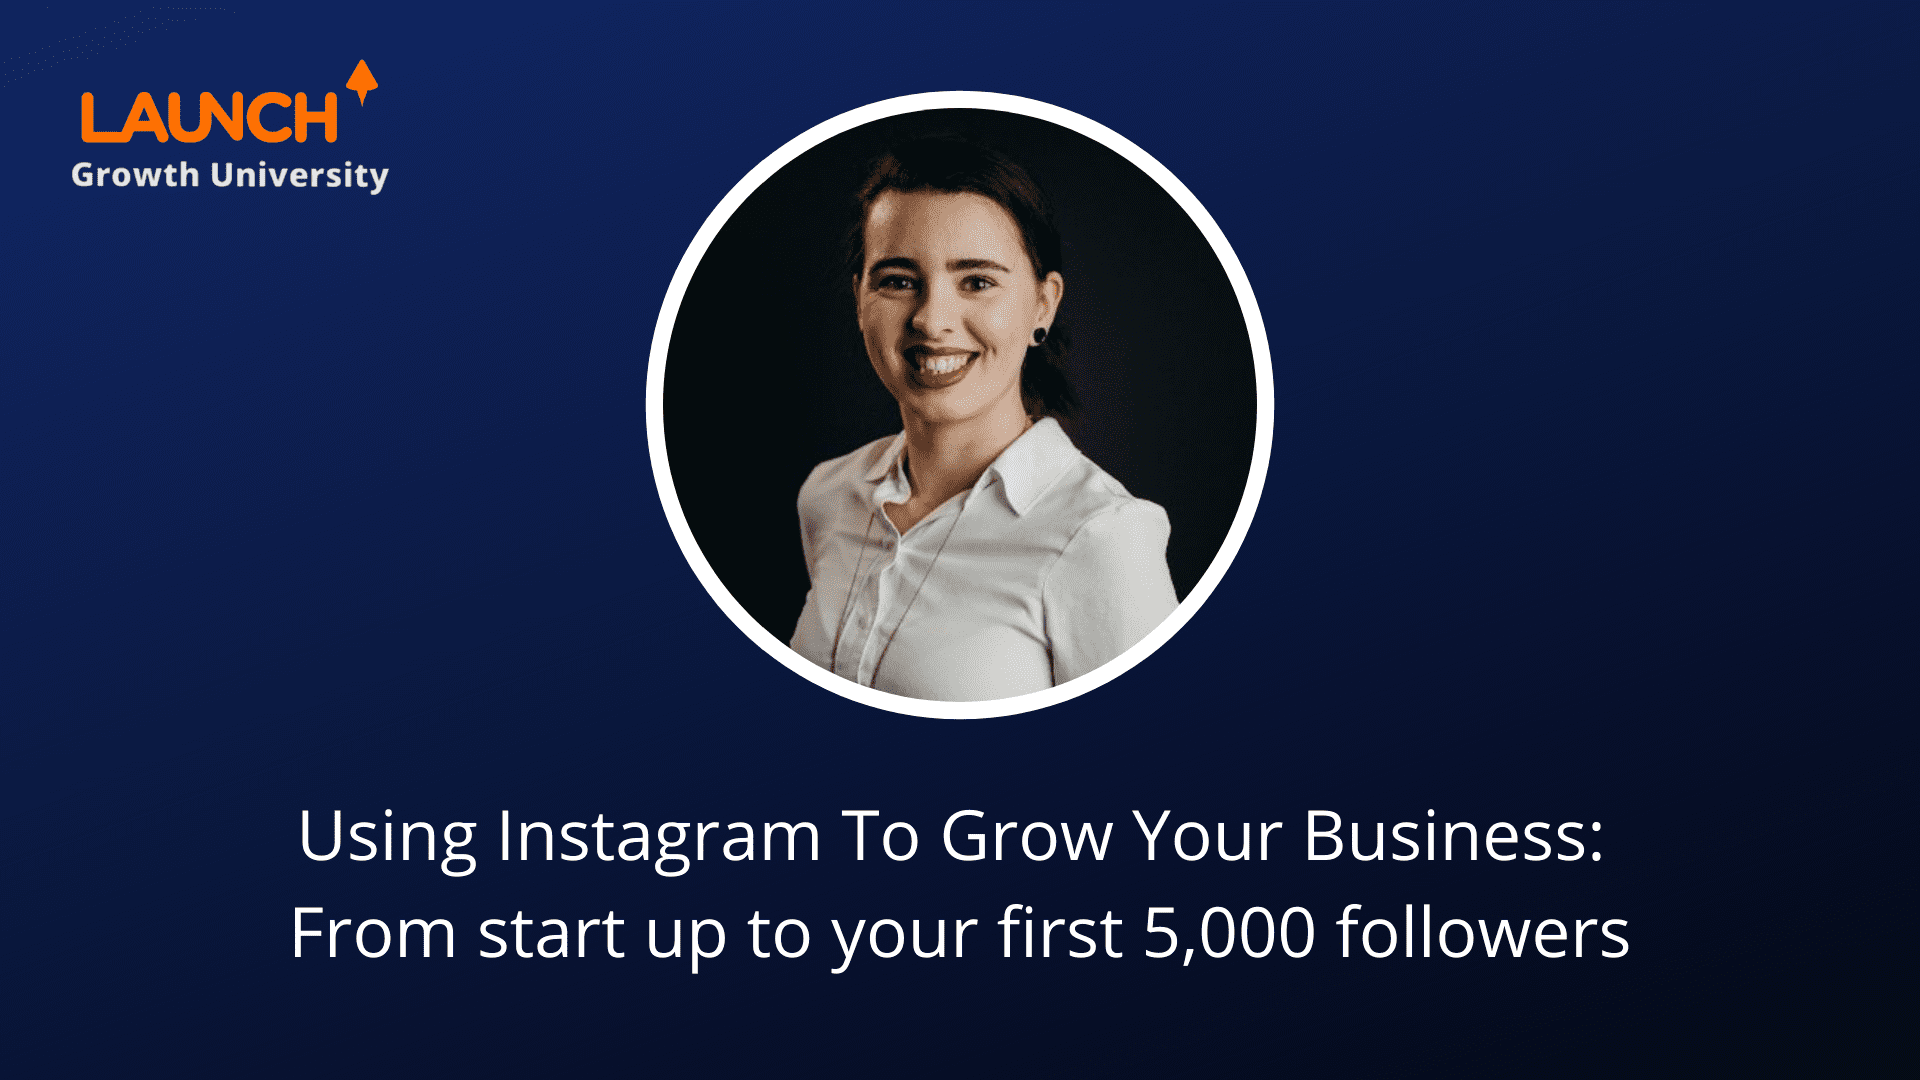 Using Instagram To Grow Your Business: From start up to your first 5,000 followers